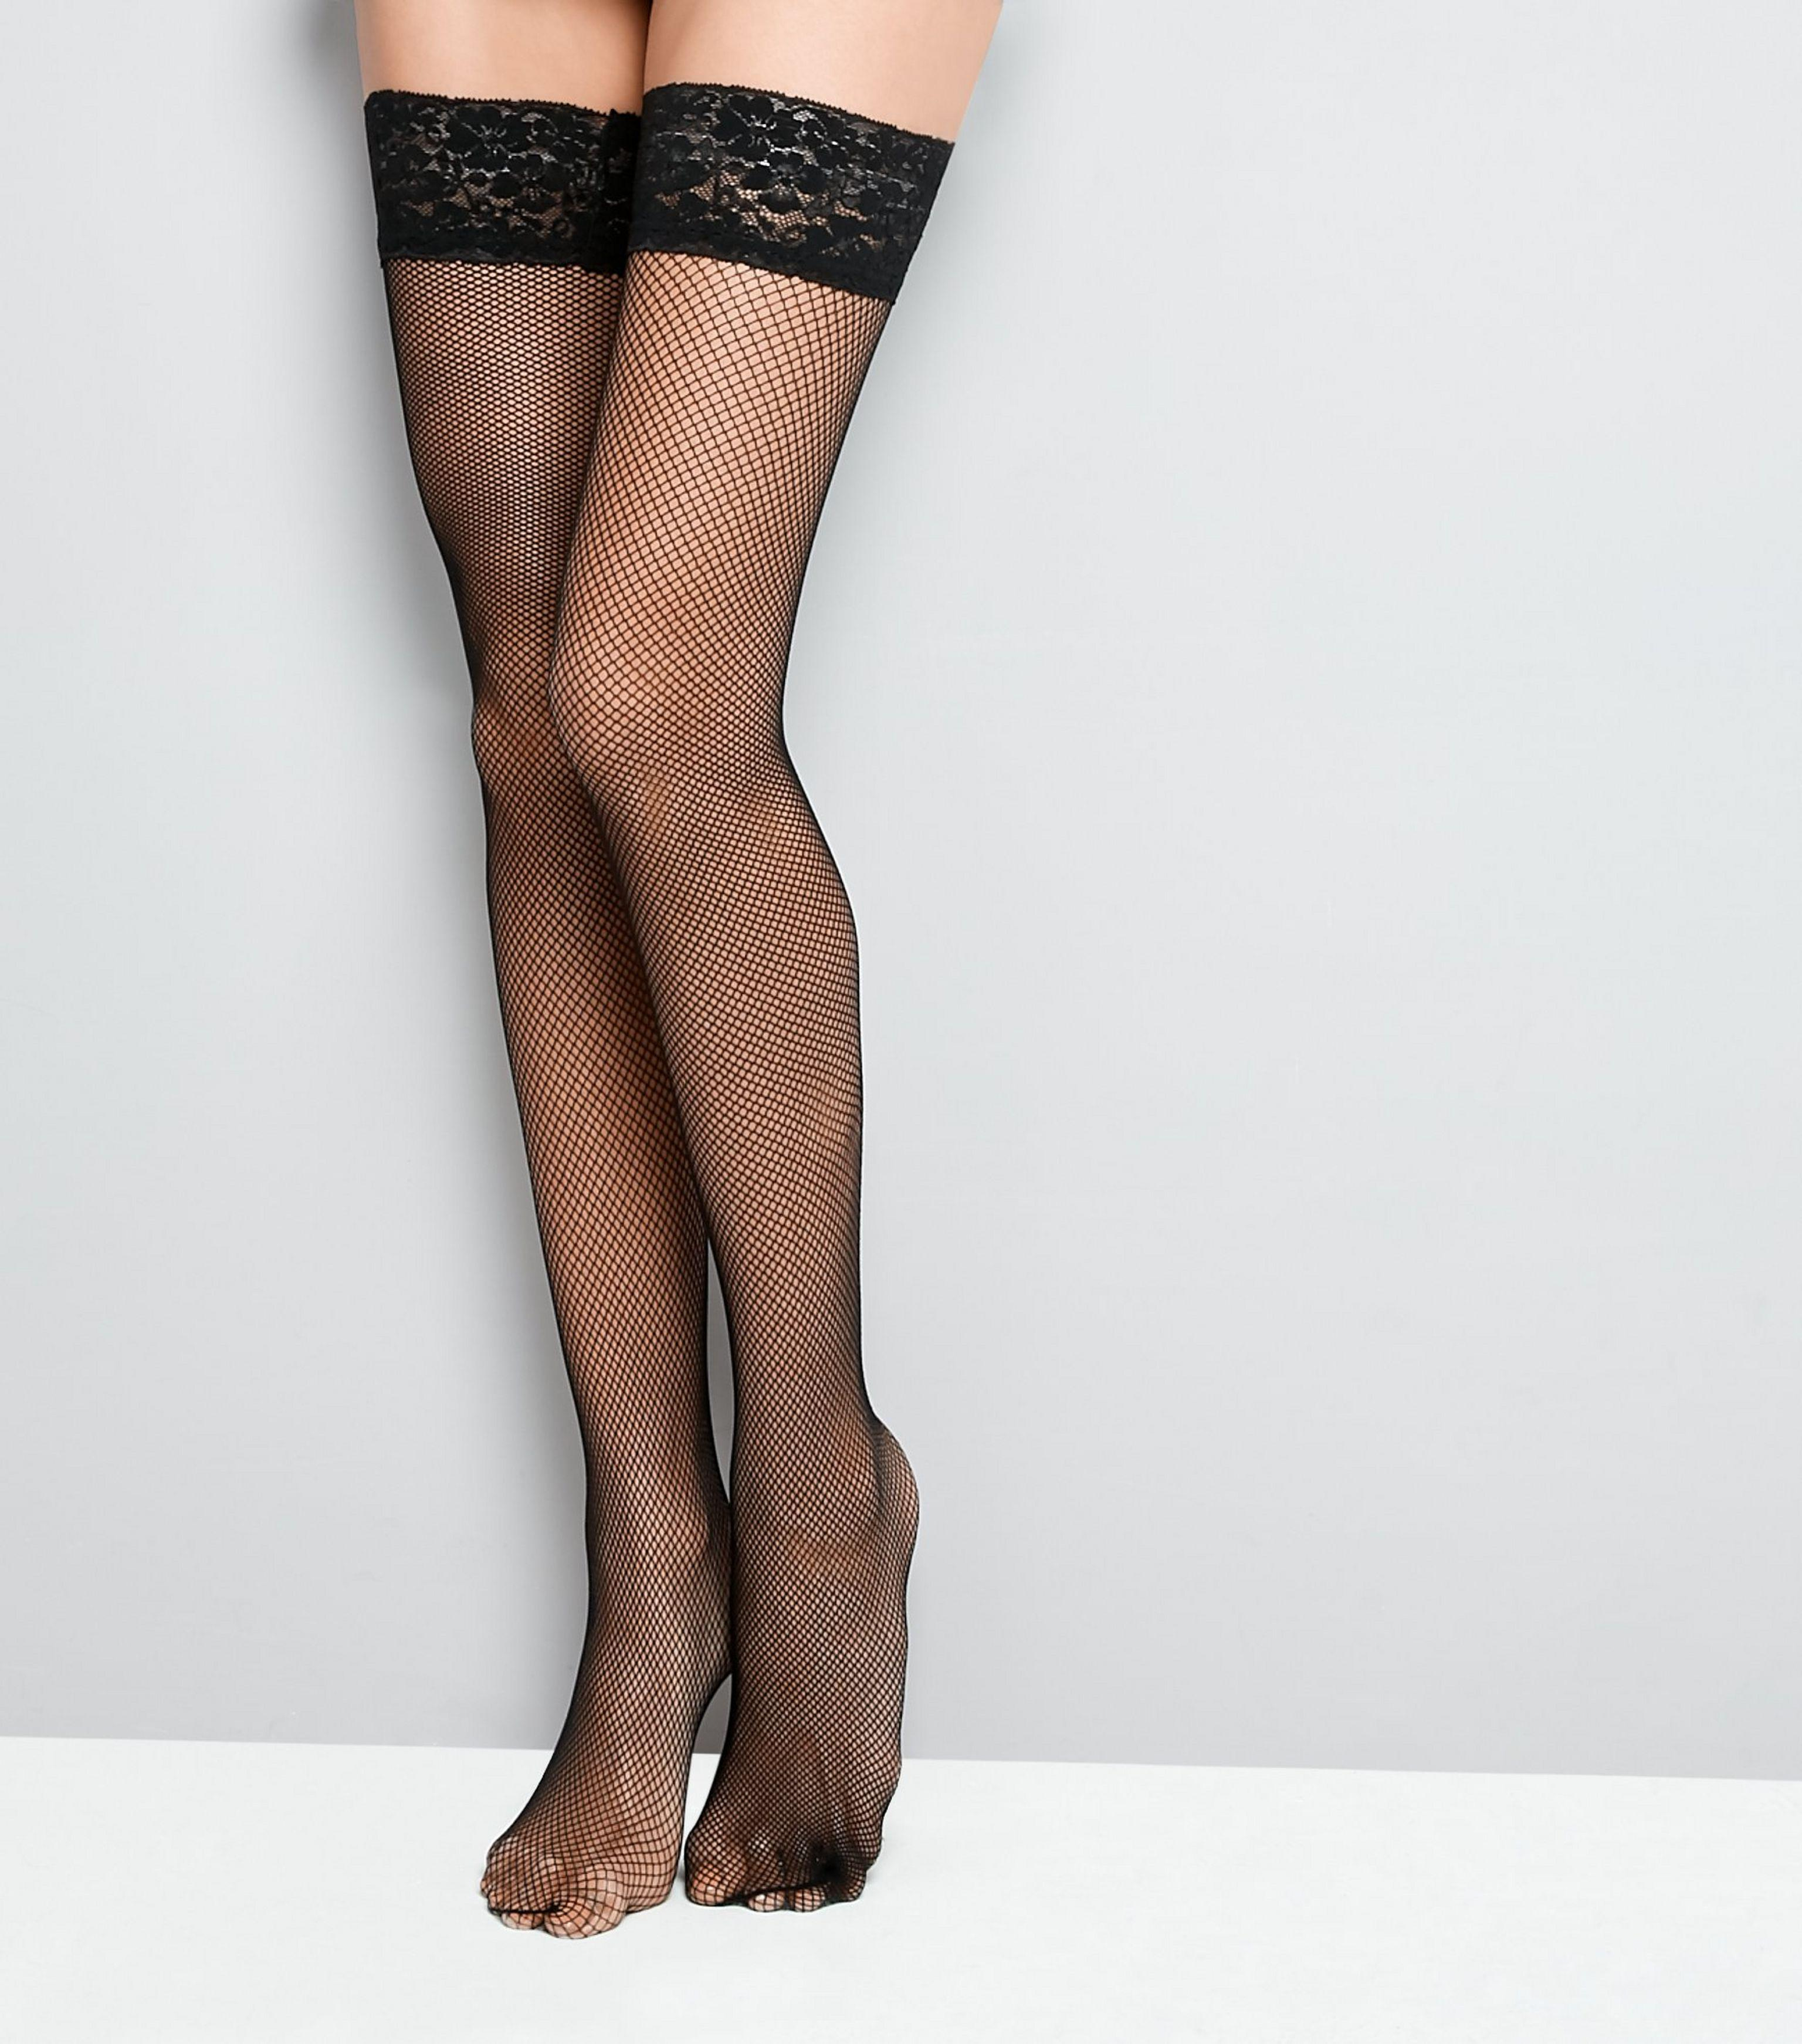 851115ba49c New Look Black Fishnet Lace Trim Hold Up Stockings in Black - Lyst